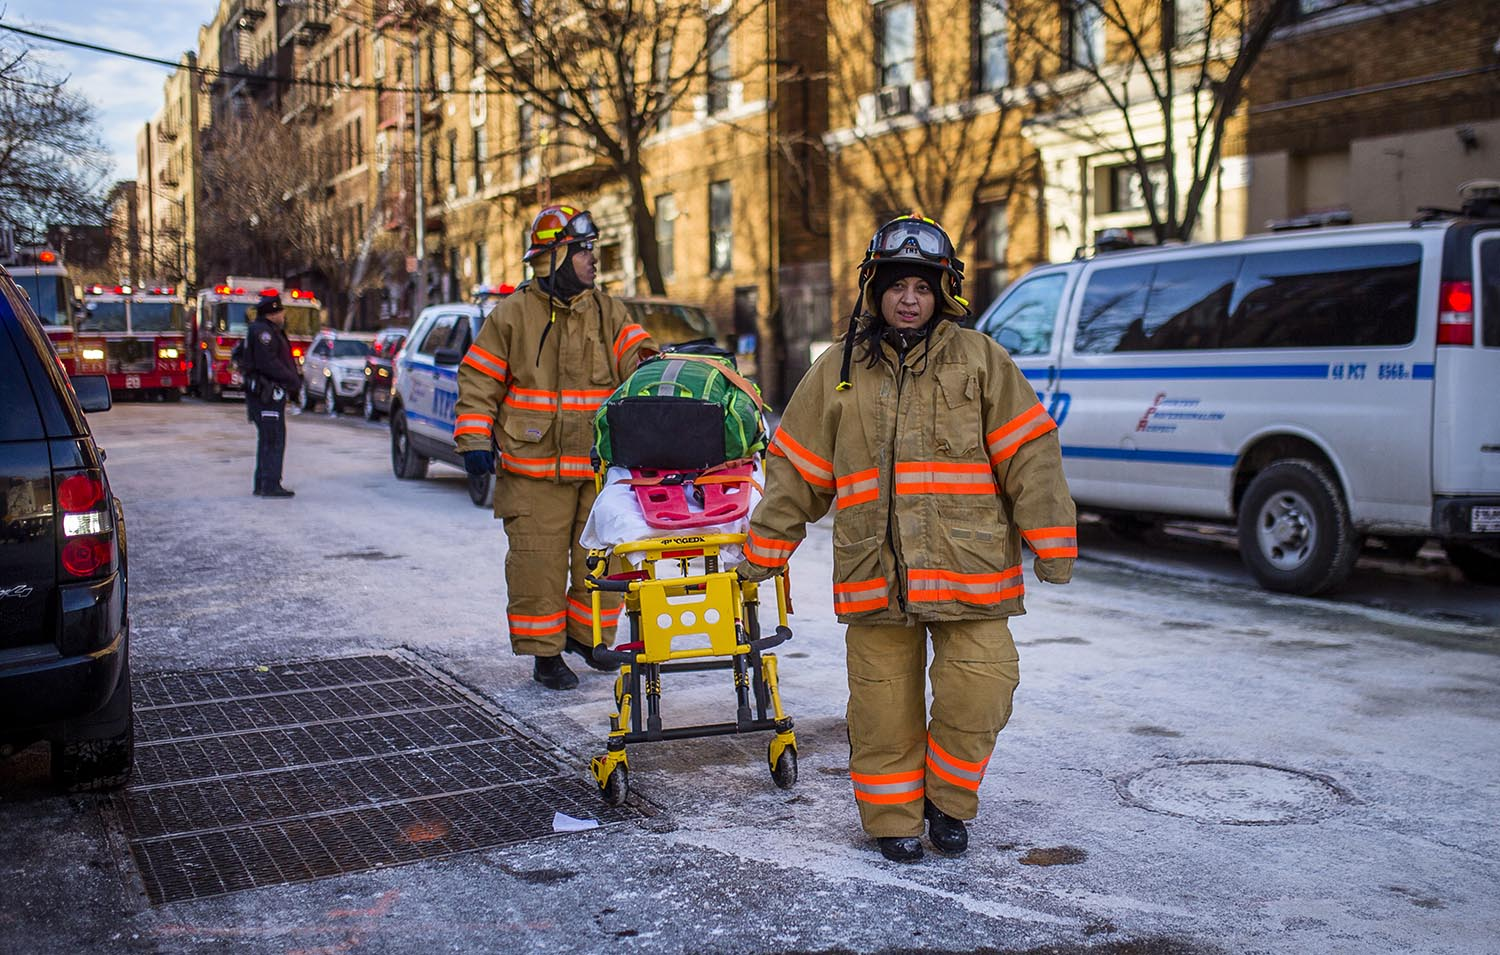 """<div class=""""meta image-caption""""><div class=""""origin-logo origin-image ap""""><span>AP</span></div><span class=""""caption-text"""">Police stand guard as paramedics leave the scene near the building Friday, Dec. 29, 2017, where more than 10 people died in a fire on Thursday in the Bronx. (AP Photo/Andres Kudacki)</span></div>"""